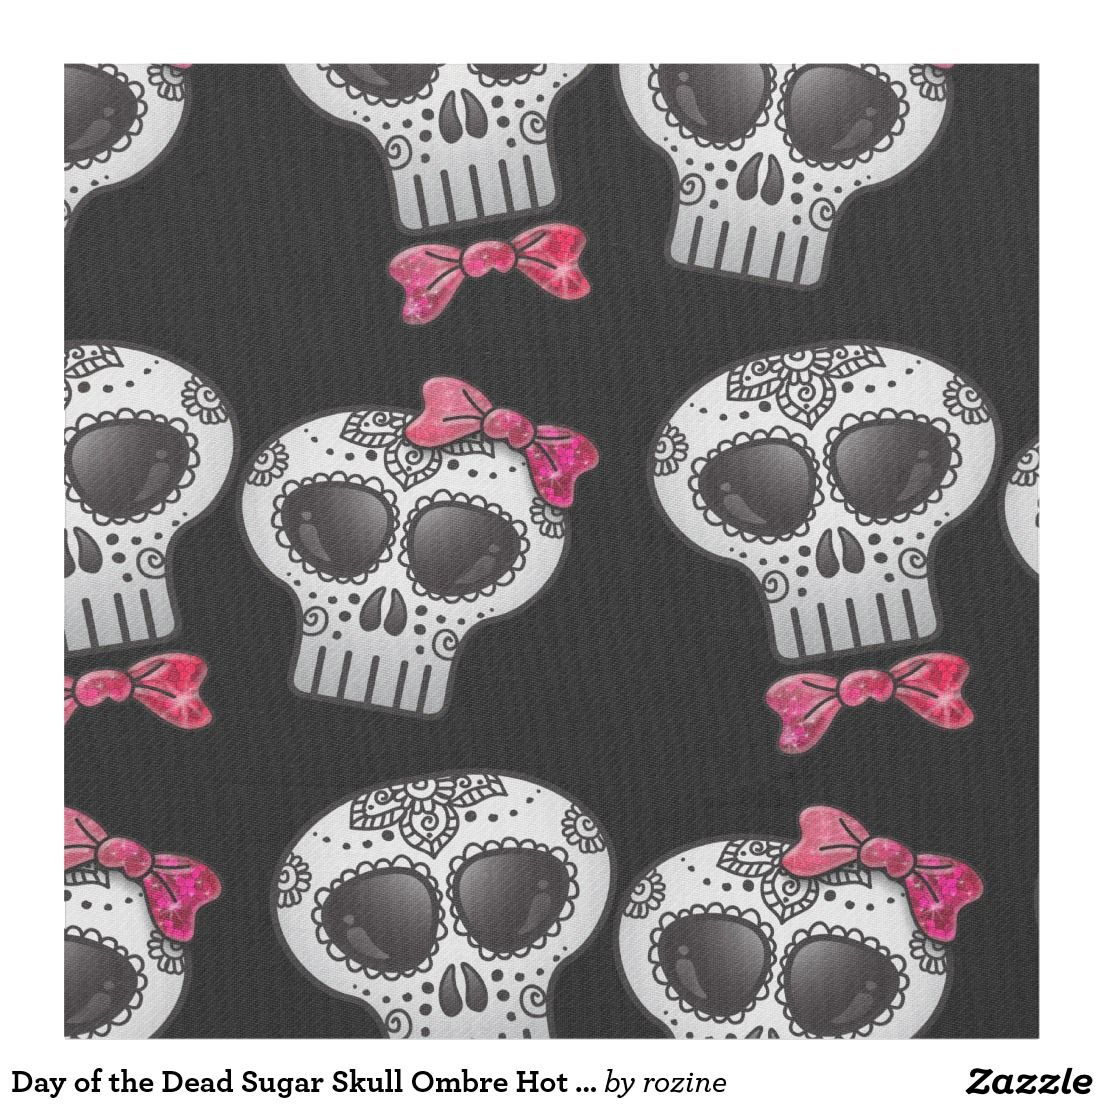 Day of the Dead Sugar Skull Ombre Hot Pink Glitter